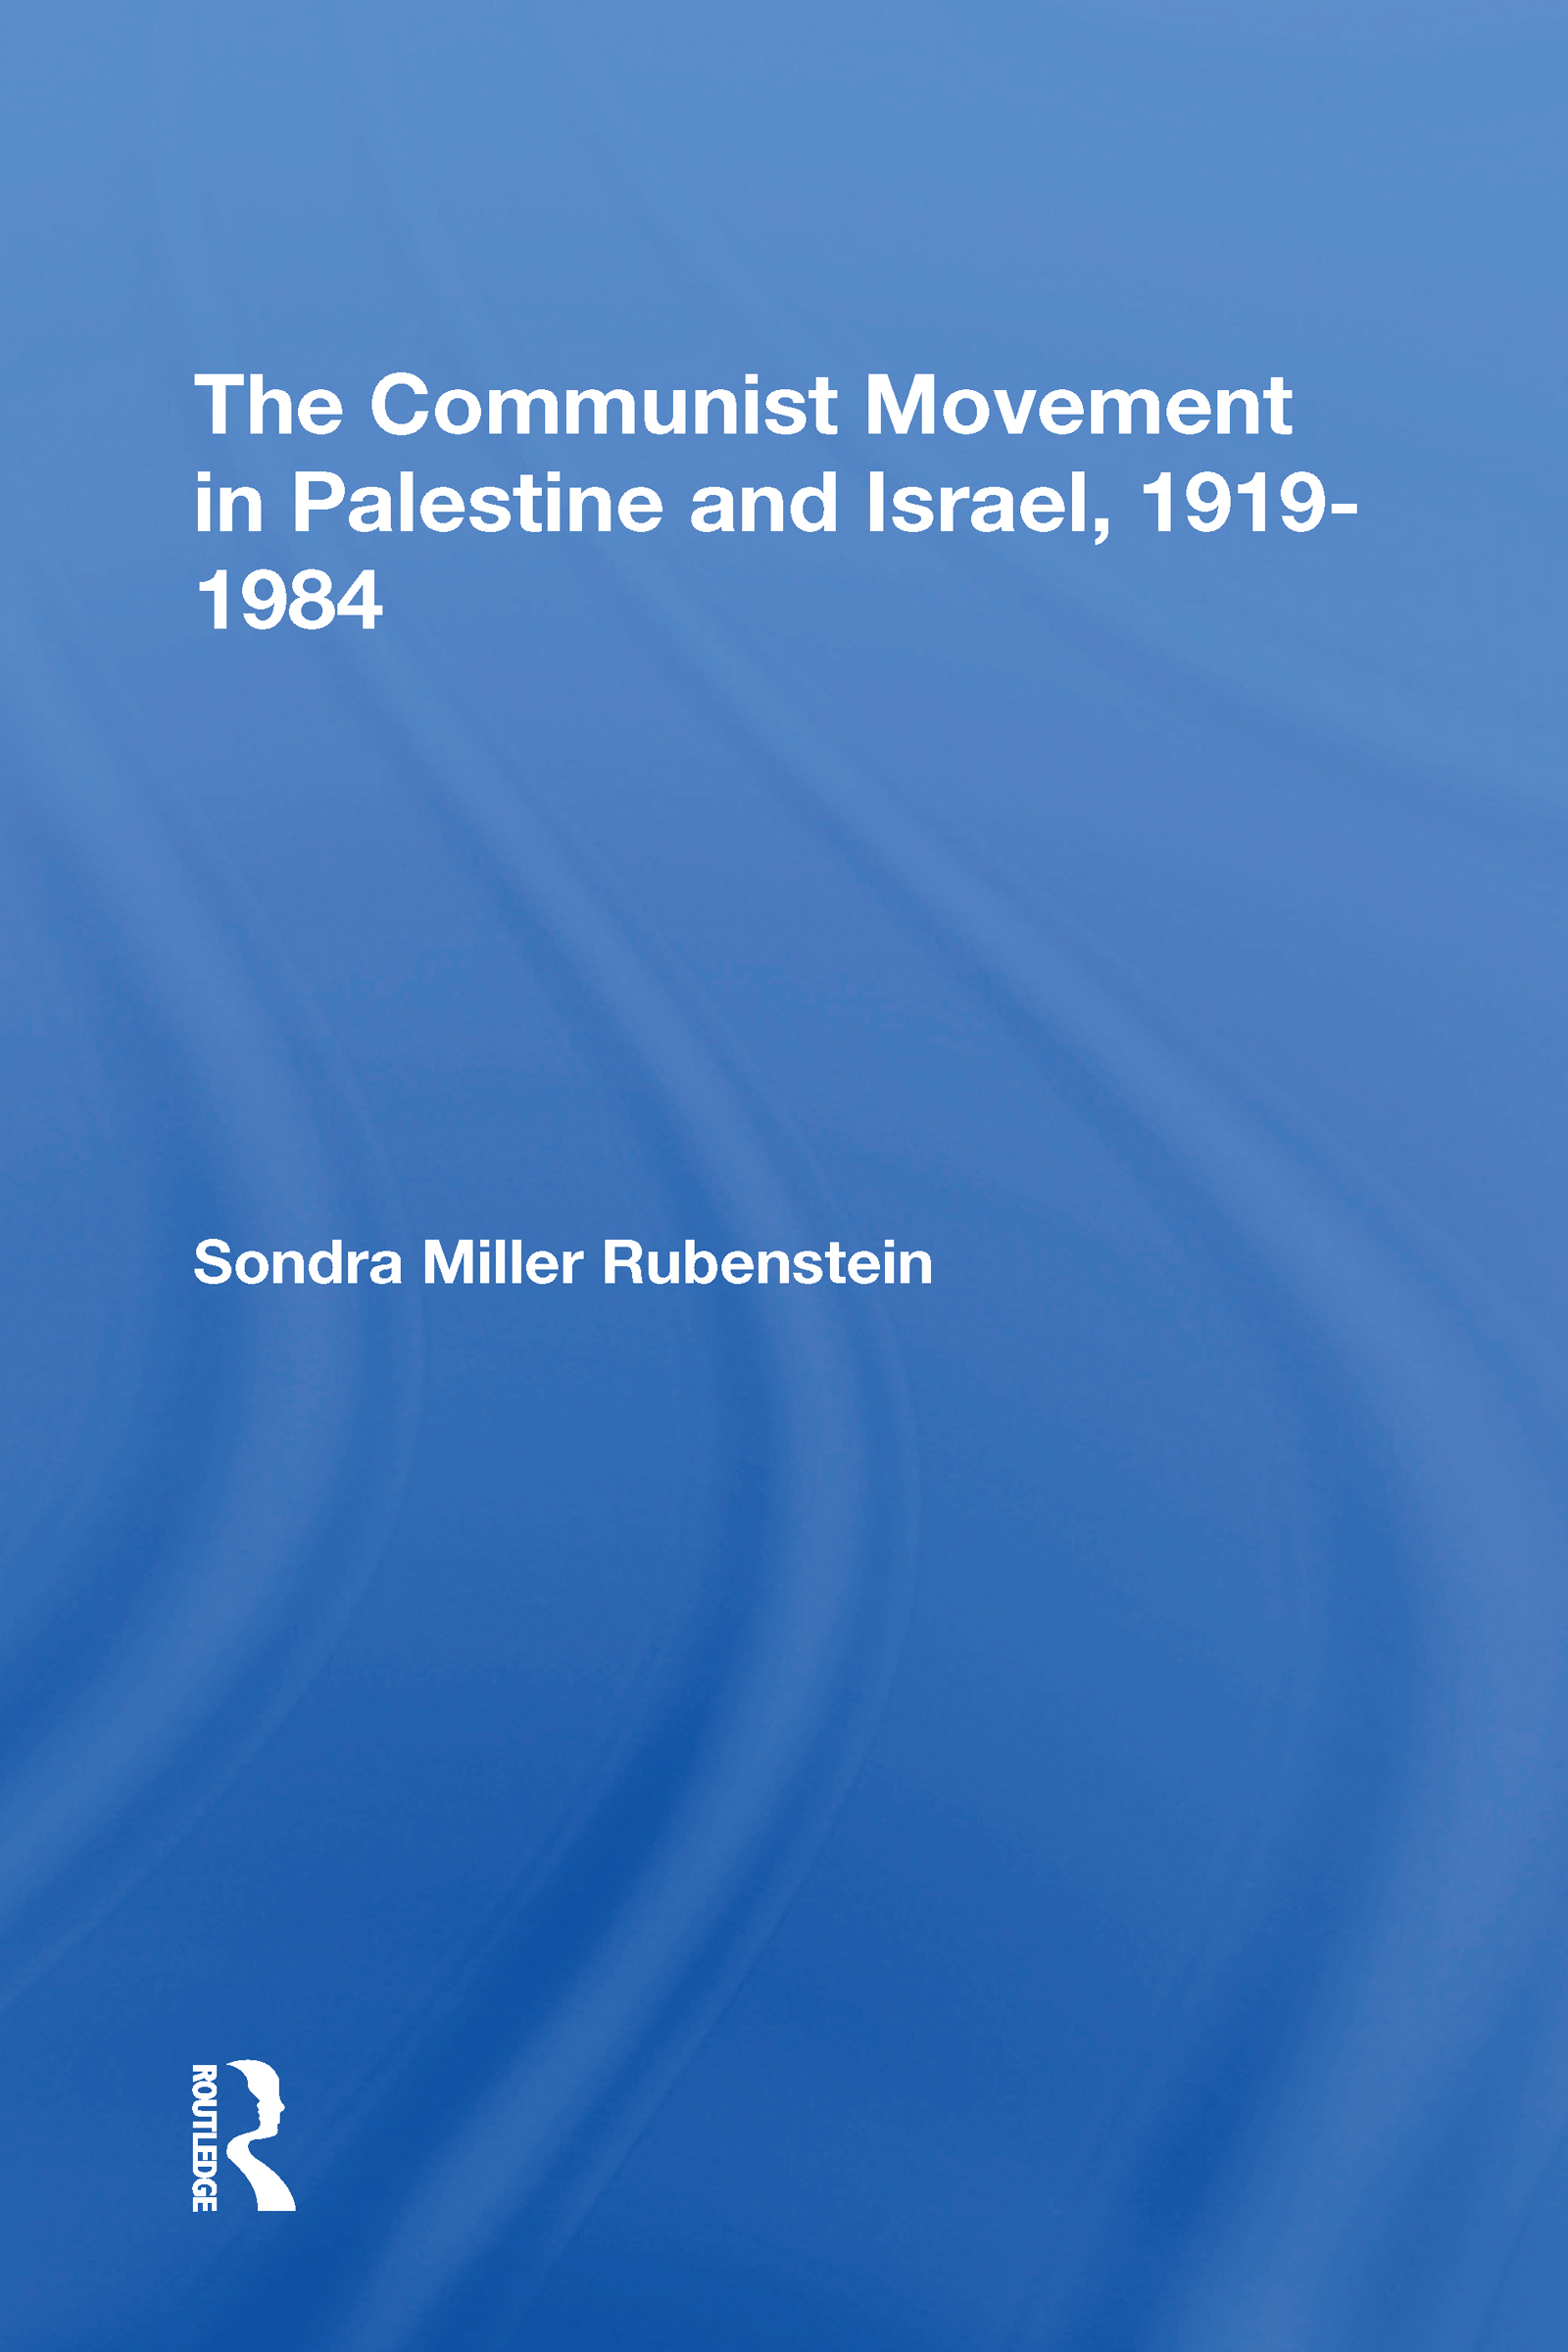 The Communist Movement In Palestine And Israel, 1919-1984